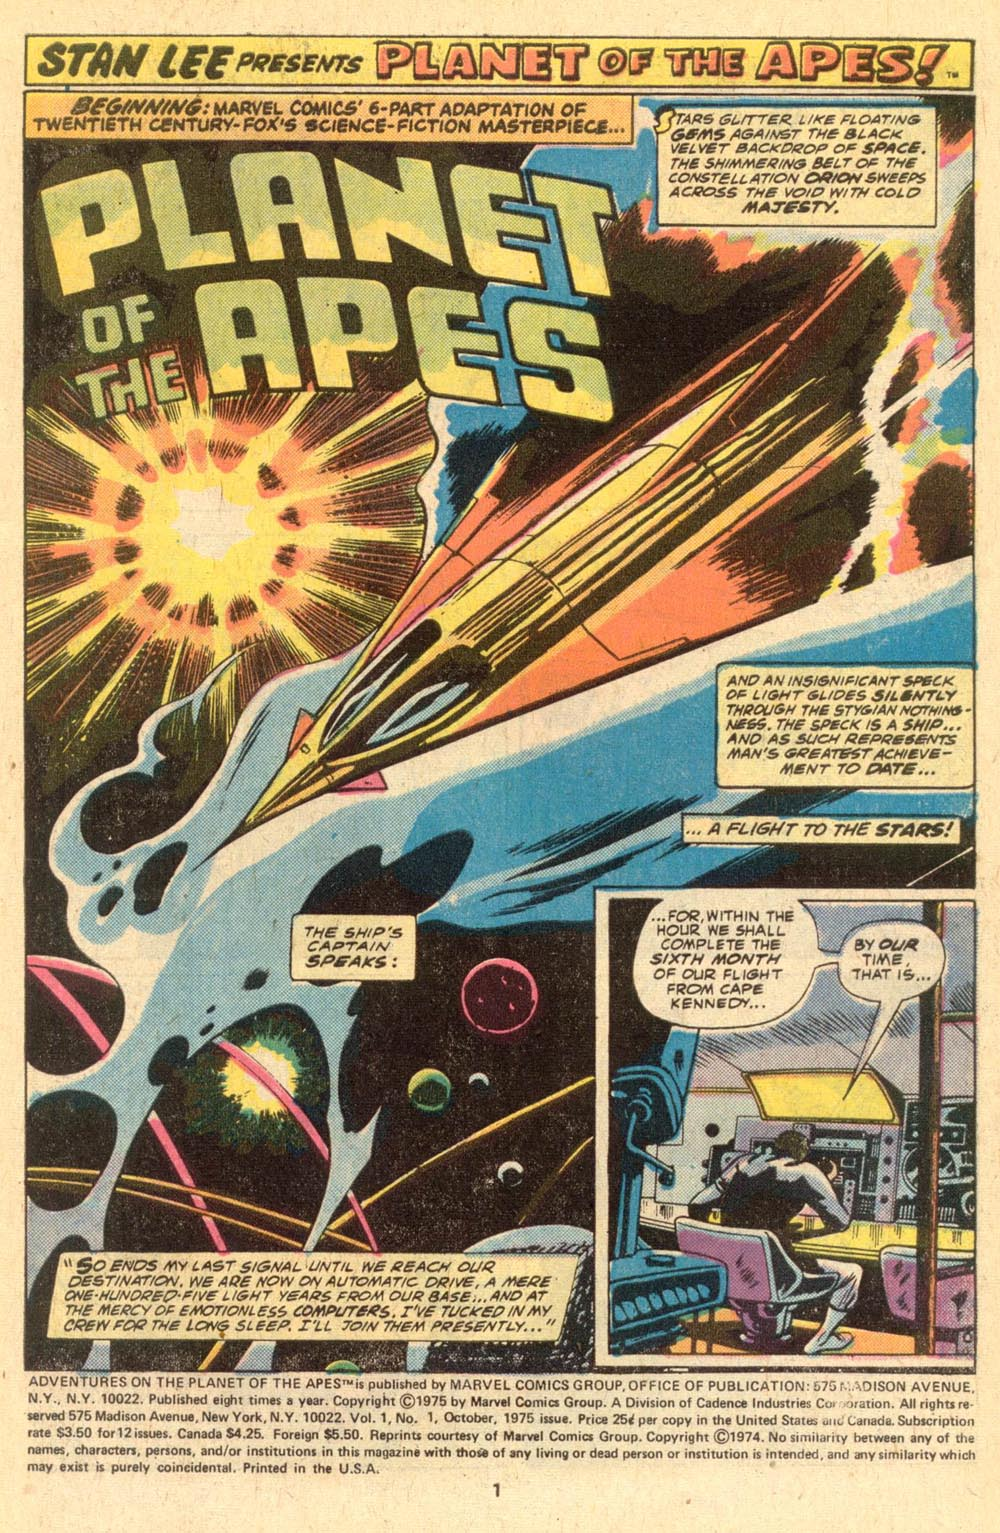 Read online Adventures on the Planet of the Apes comic -  Issue #1 - 2